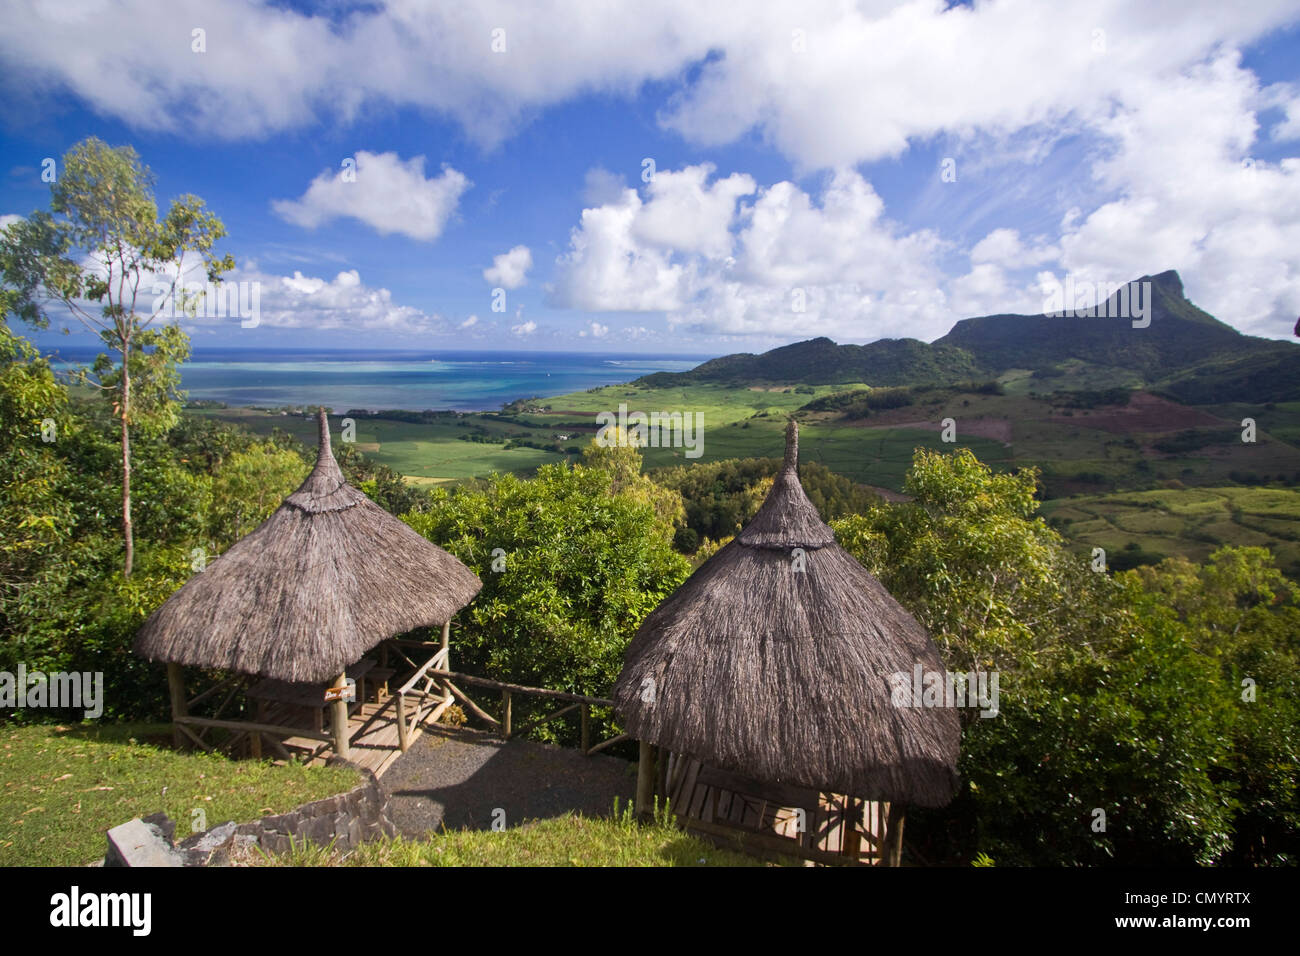 Game park and Resort Domain du Chasseur, Mauritius, Africa - Stock Image